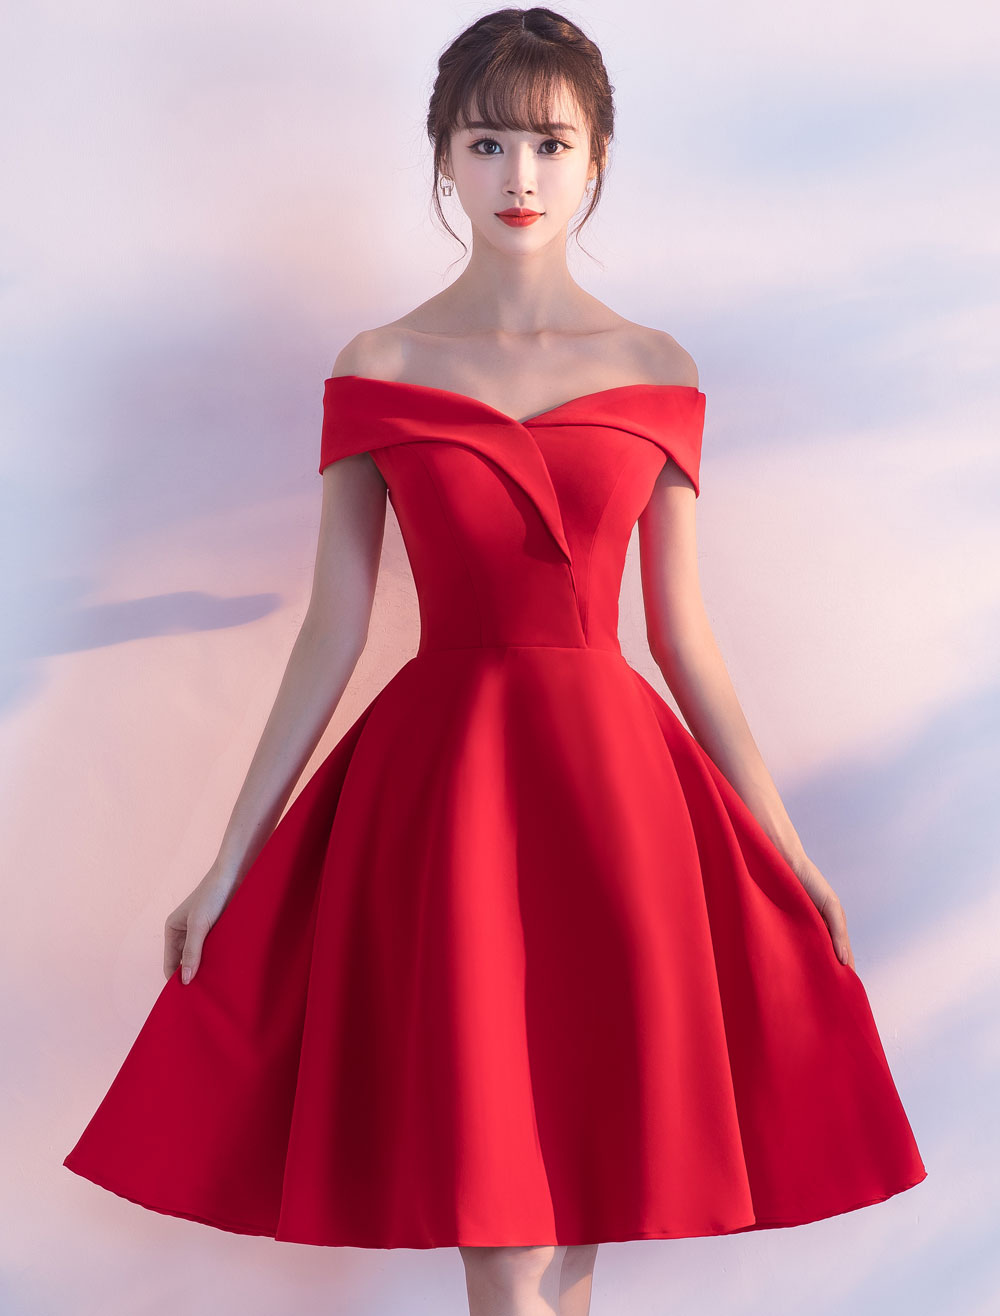 Red Cocktail Dresses Satin Off The Shoulder Short Homecoming Dress A Line Knee Length Party Dress